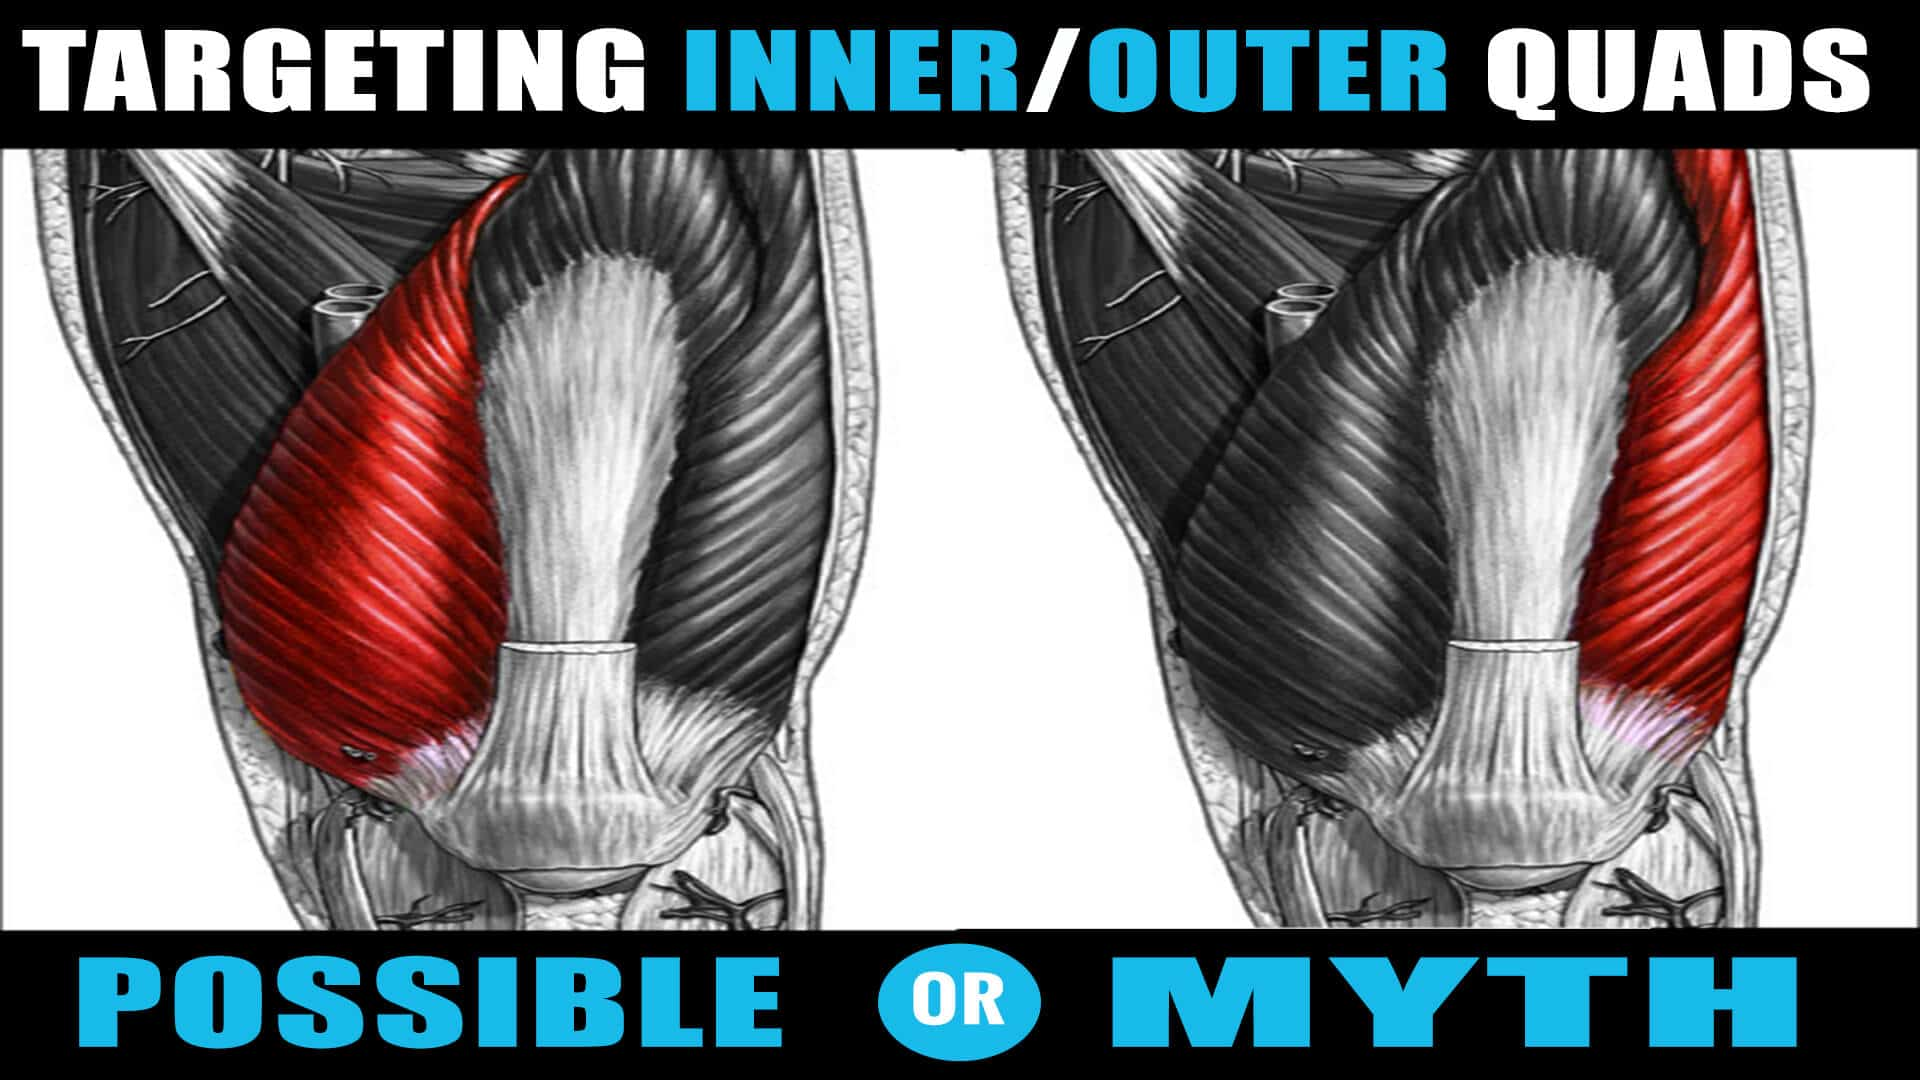 TARGETING INNER/OUTER QUADS | Possible or MYTH?